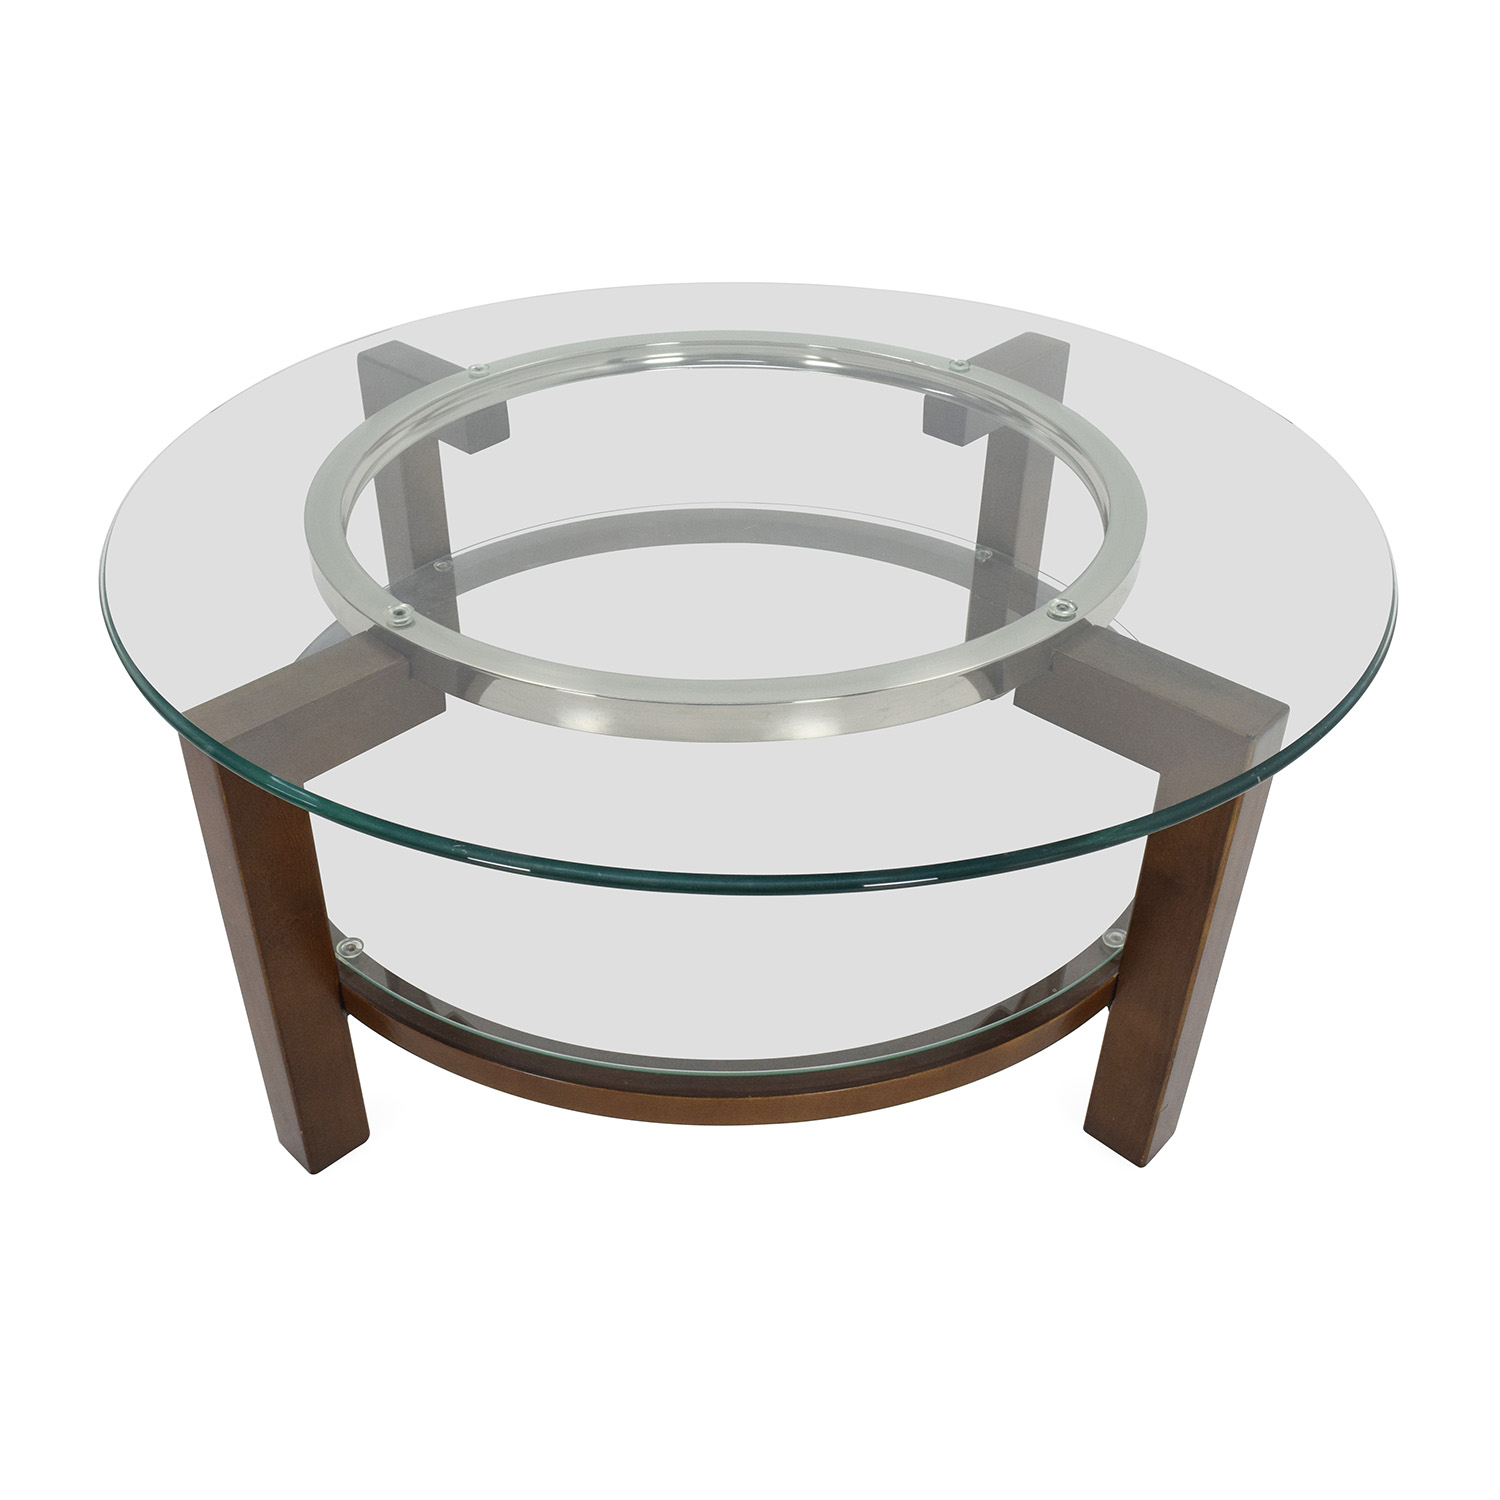 80 off cb2 cb2 glass top coffee table tables for Coffee tables glass top